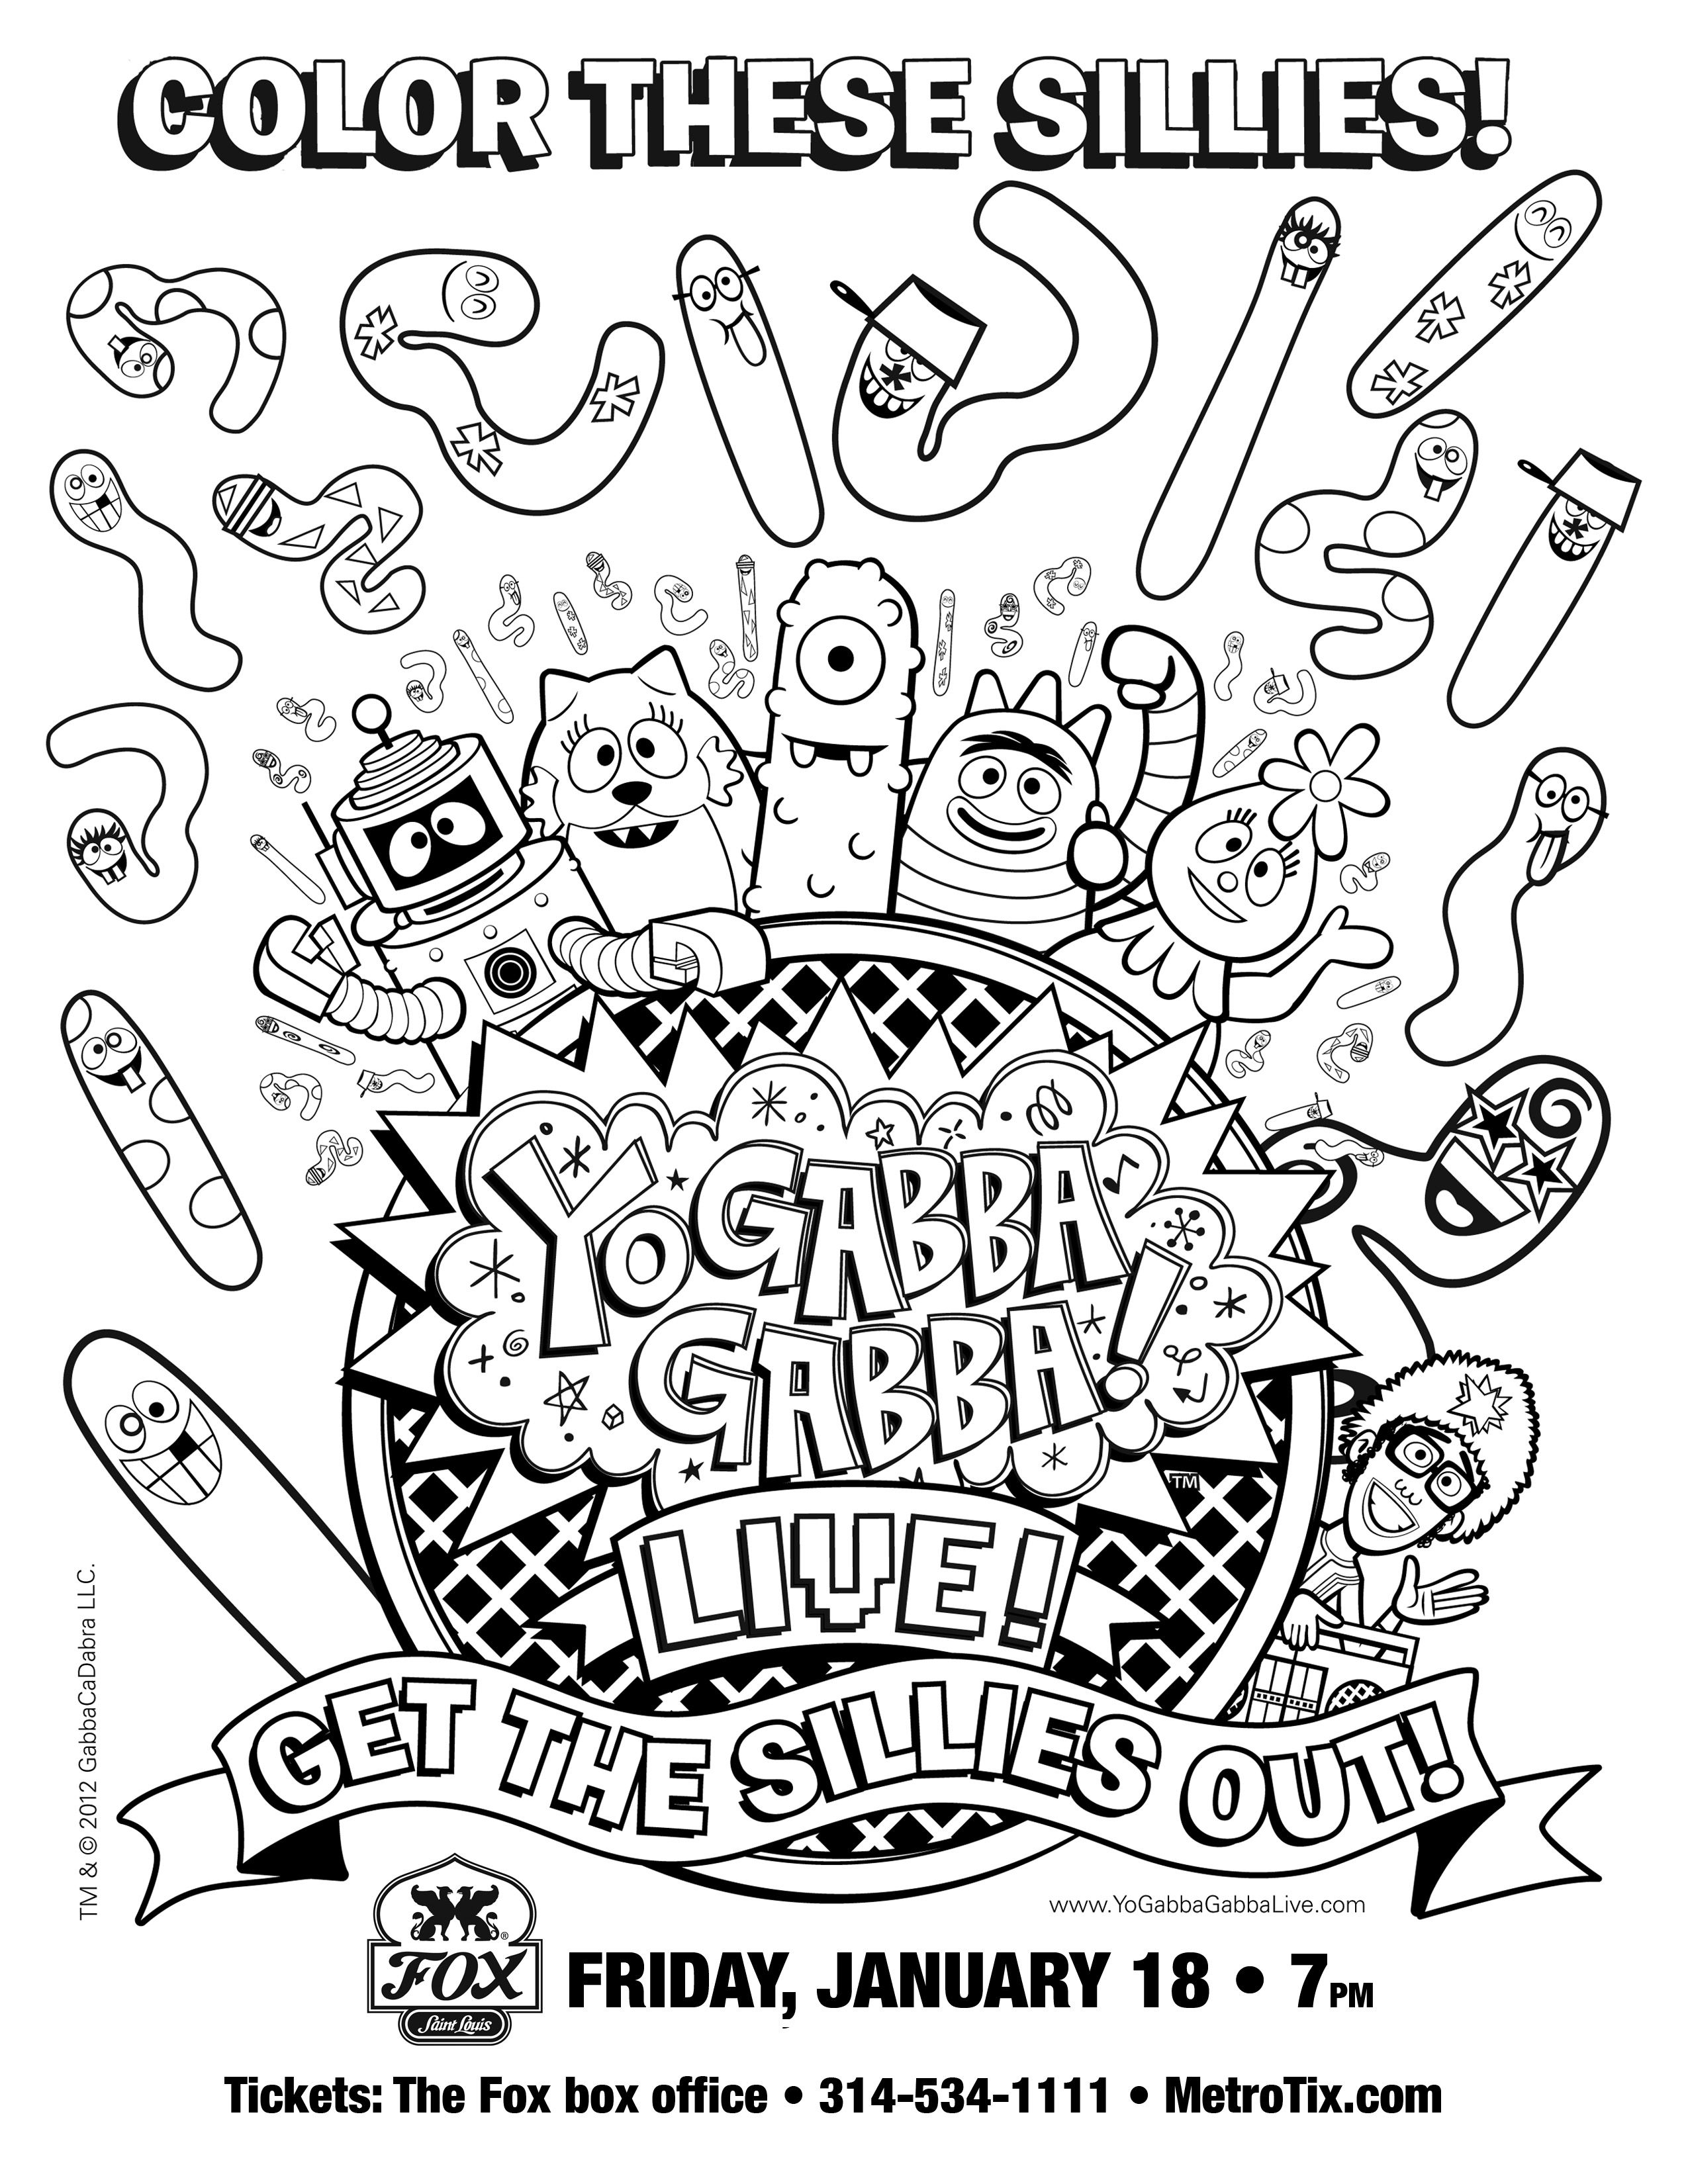 Color These Sillies Enjoy This Fabulous Coloring Sheet From Yo Gabba Gabba Yo Gabba Gabba Gabba Gabba Coloring Sheets [ 3300 x 2550 Pixel ]